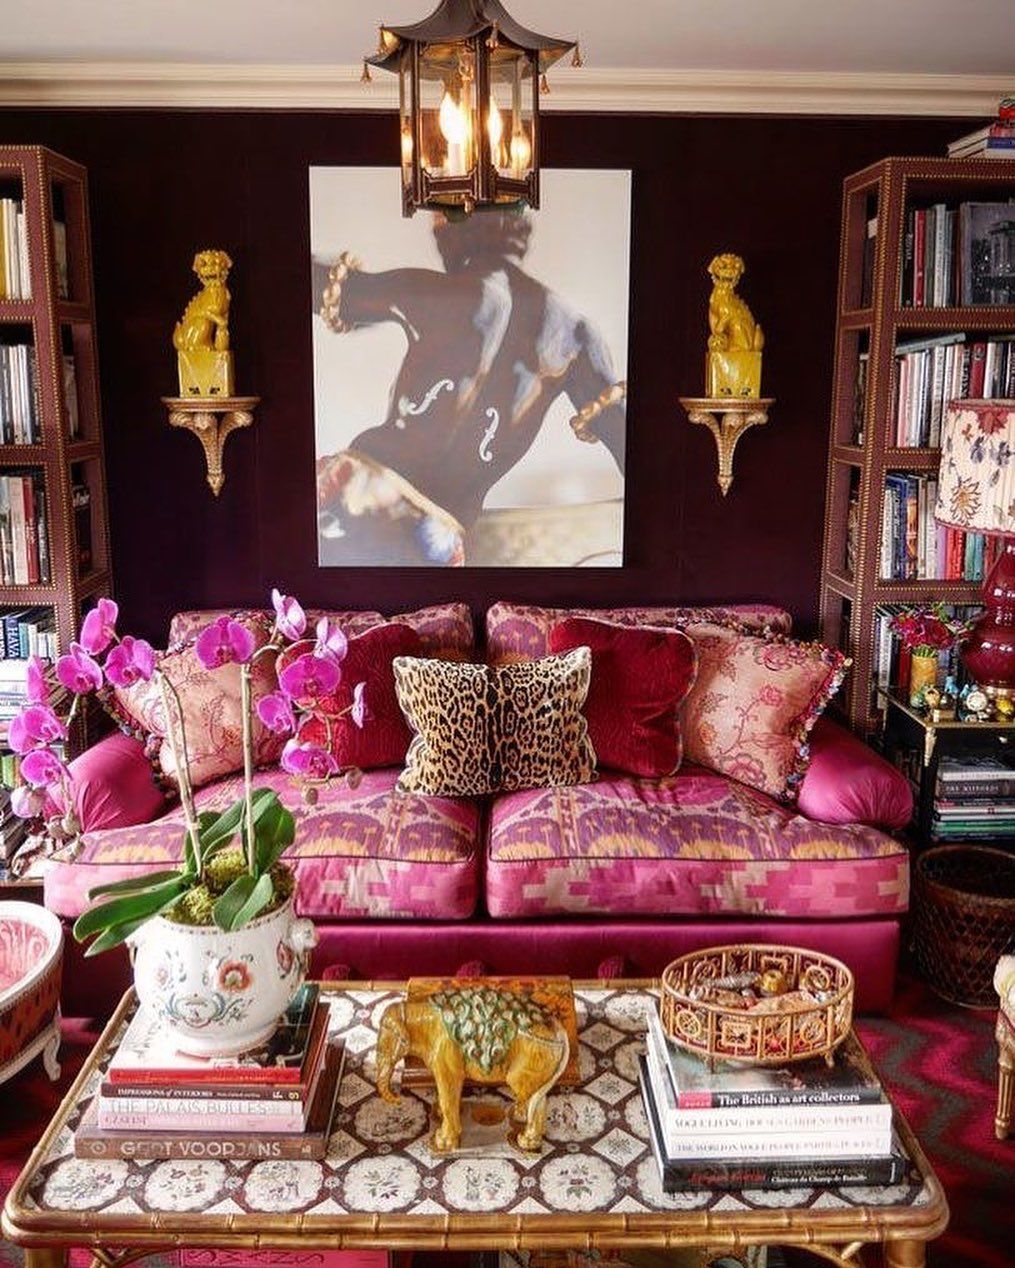 talk about layered interiors 💕💕💕 loving the chocolate